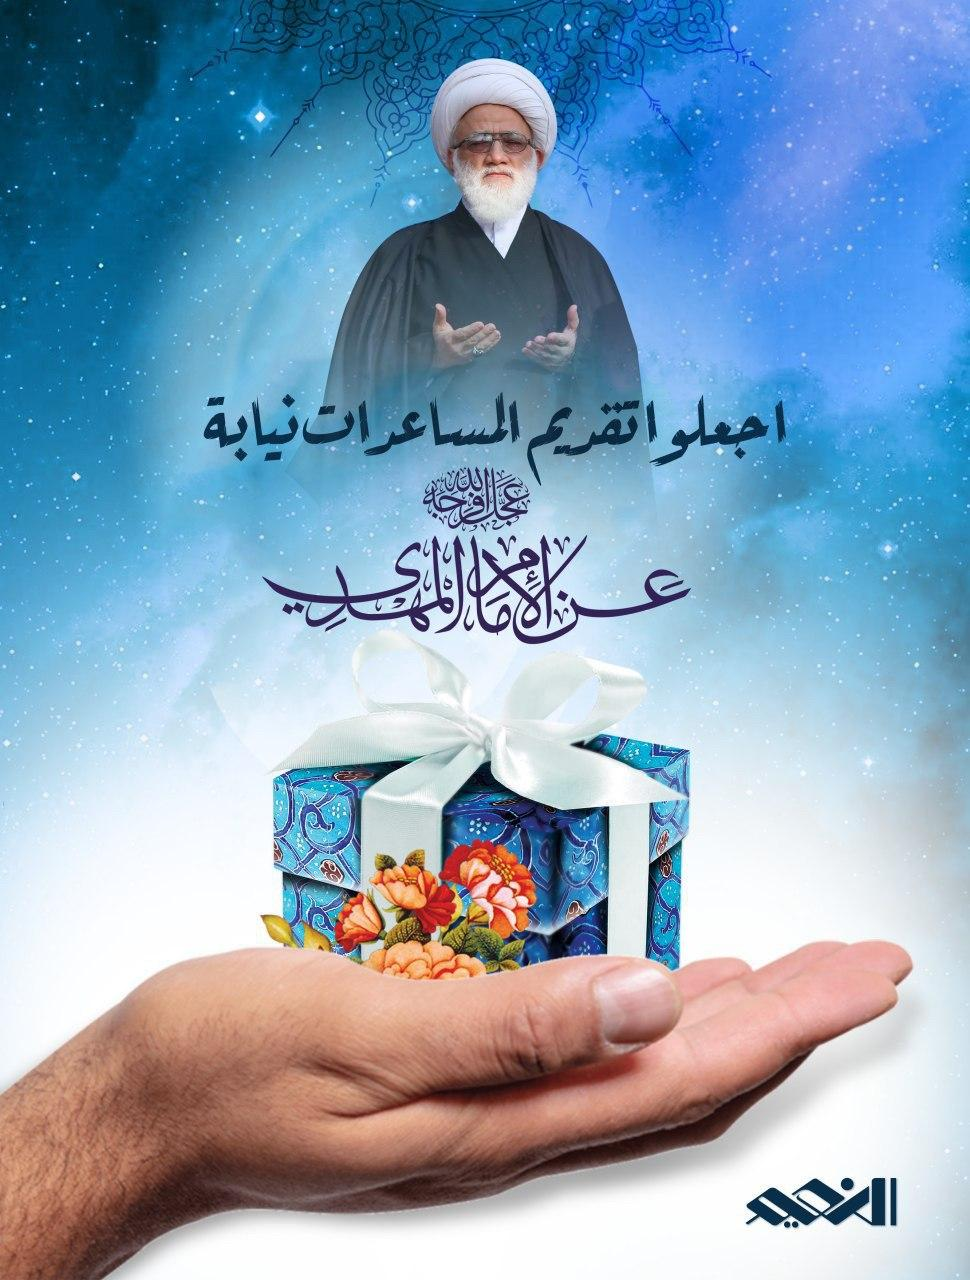 The Grand Ayatollah Yaqoobi: make donations on behalf of Imam Mahdi (peace be upon him)